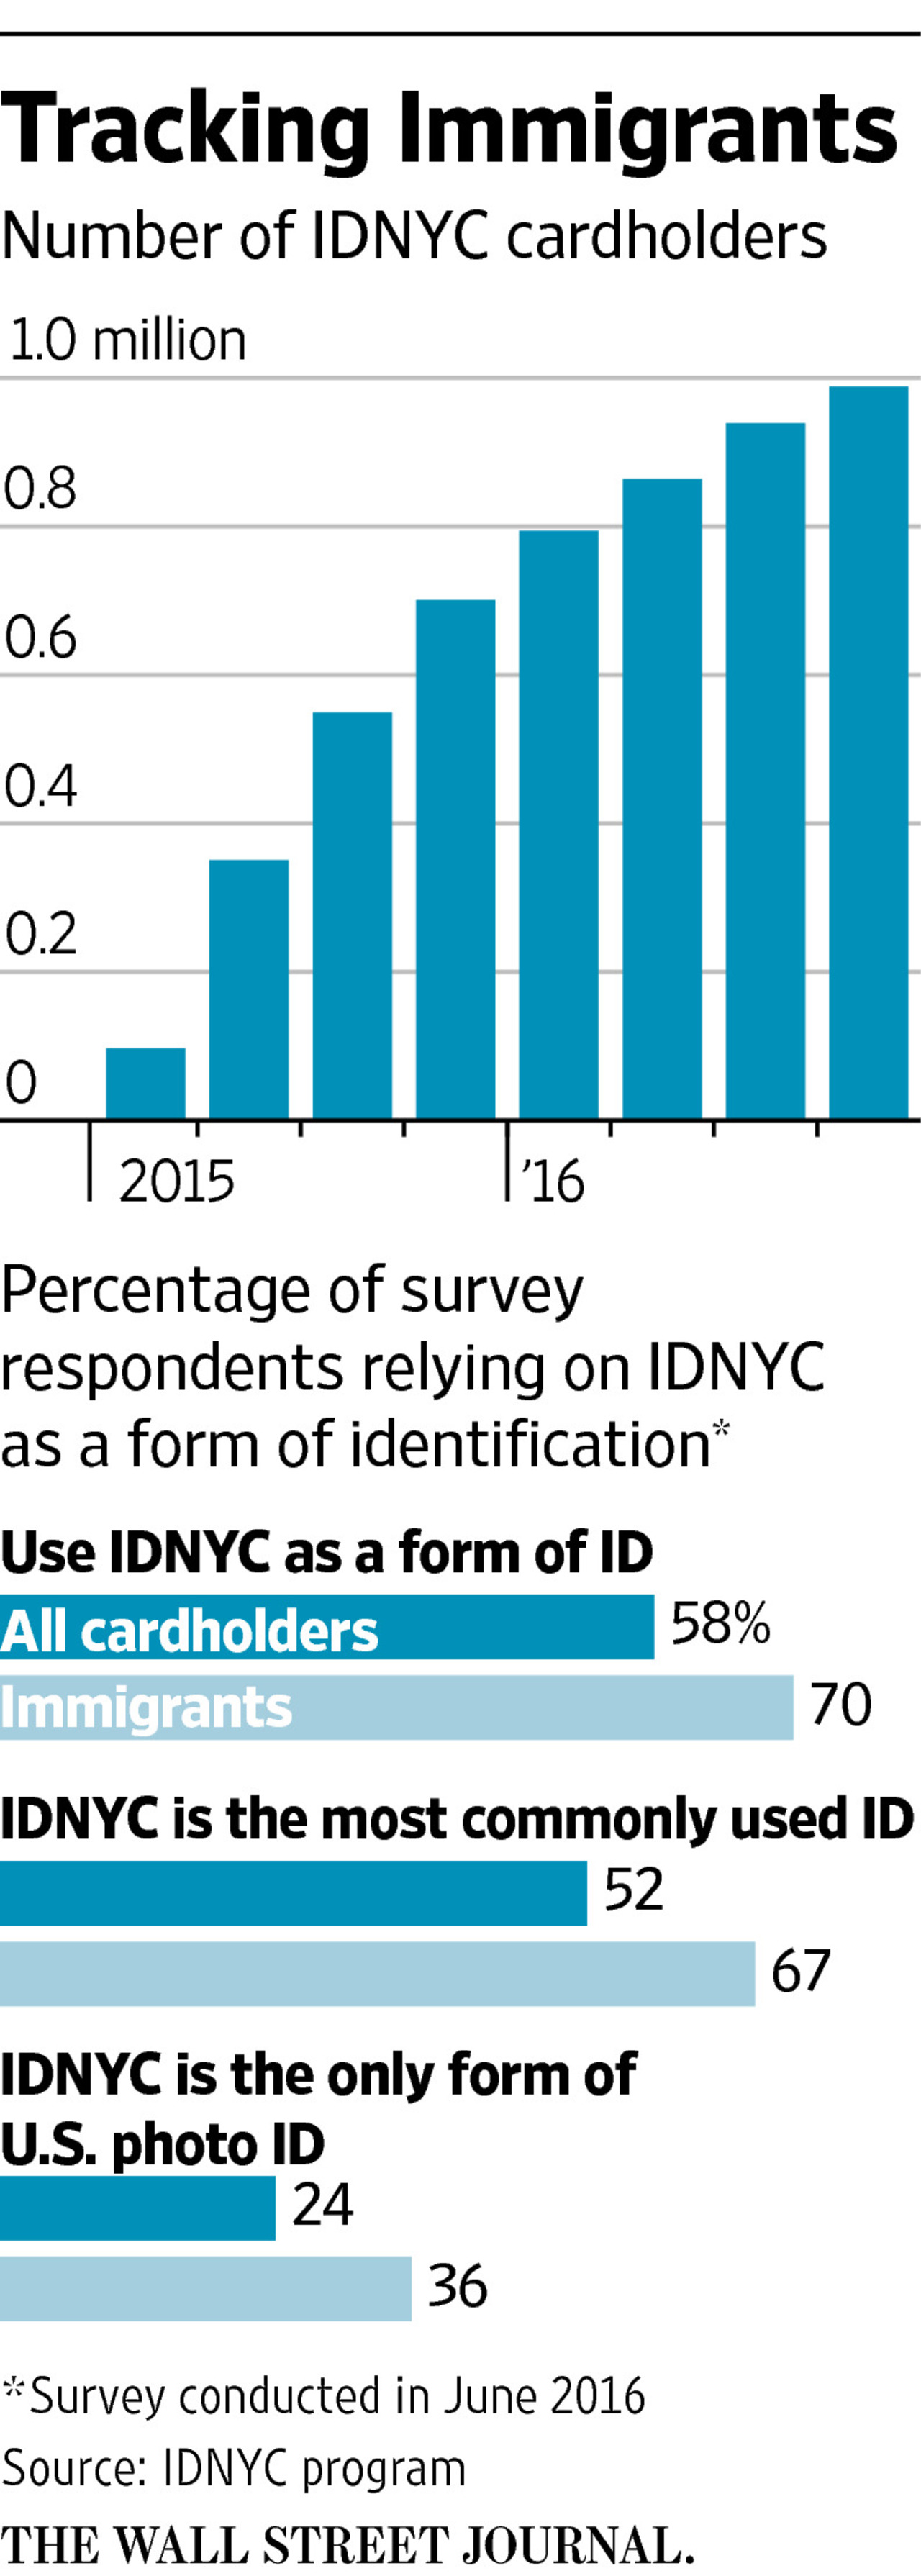 New York City Officials Defend Shielding Data Of Illegal